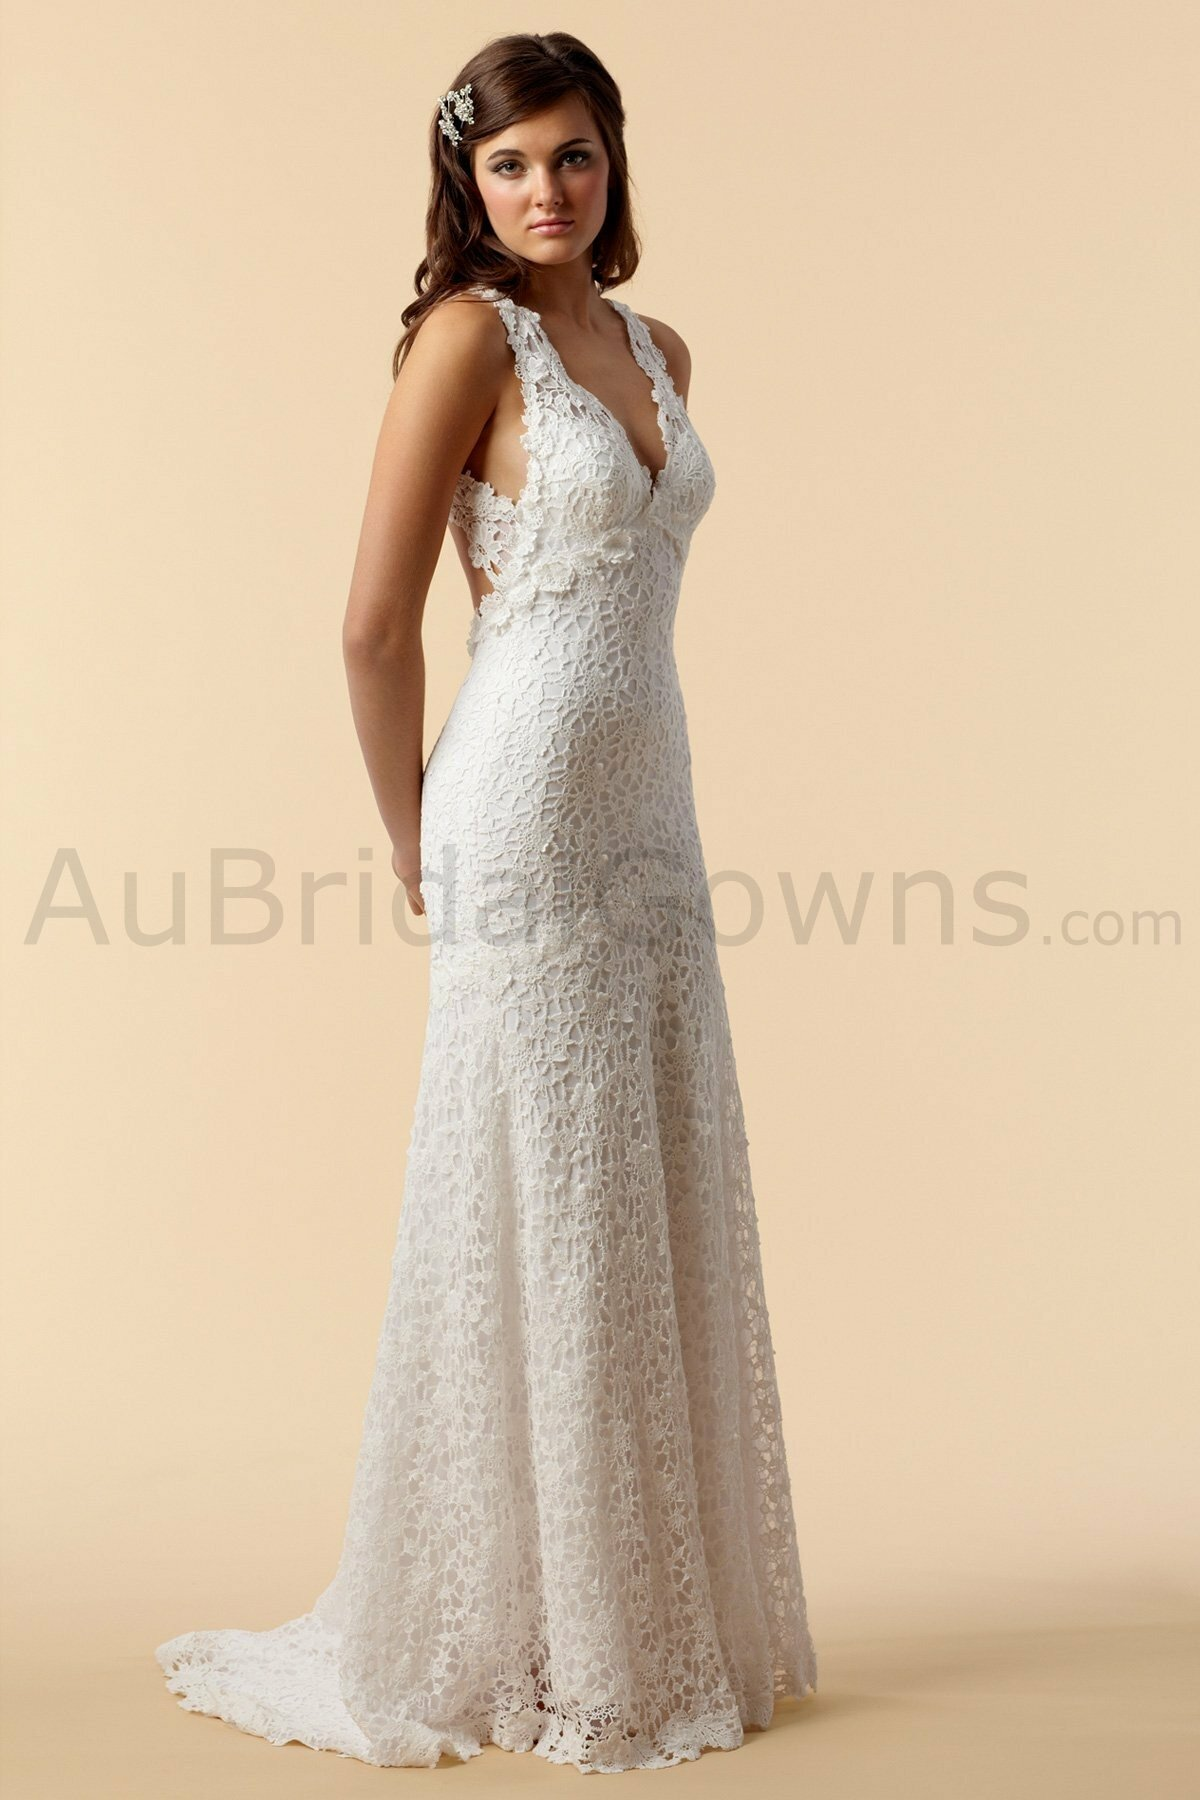 Cotton lace wedding dresses photo - 2